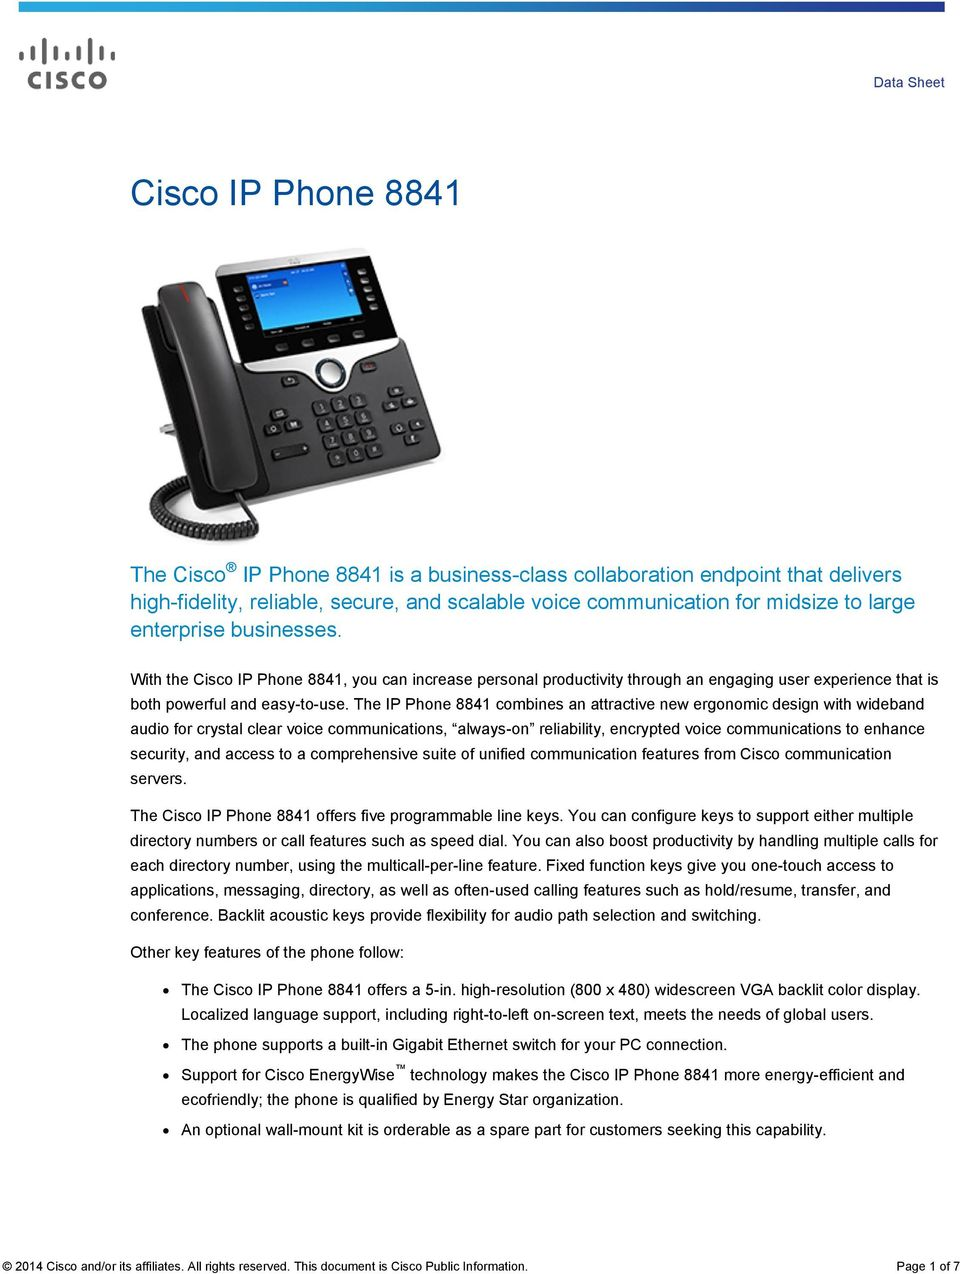 The IP Phone 8841 combines an attractive new ergonomic design with wideband audio for crystal clear voice communications, always-on reliability, encrypted voice communications to enhance security,